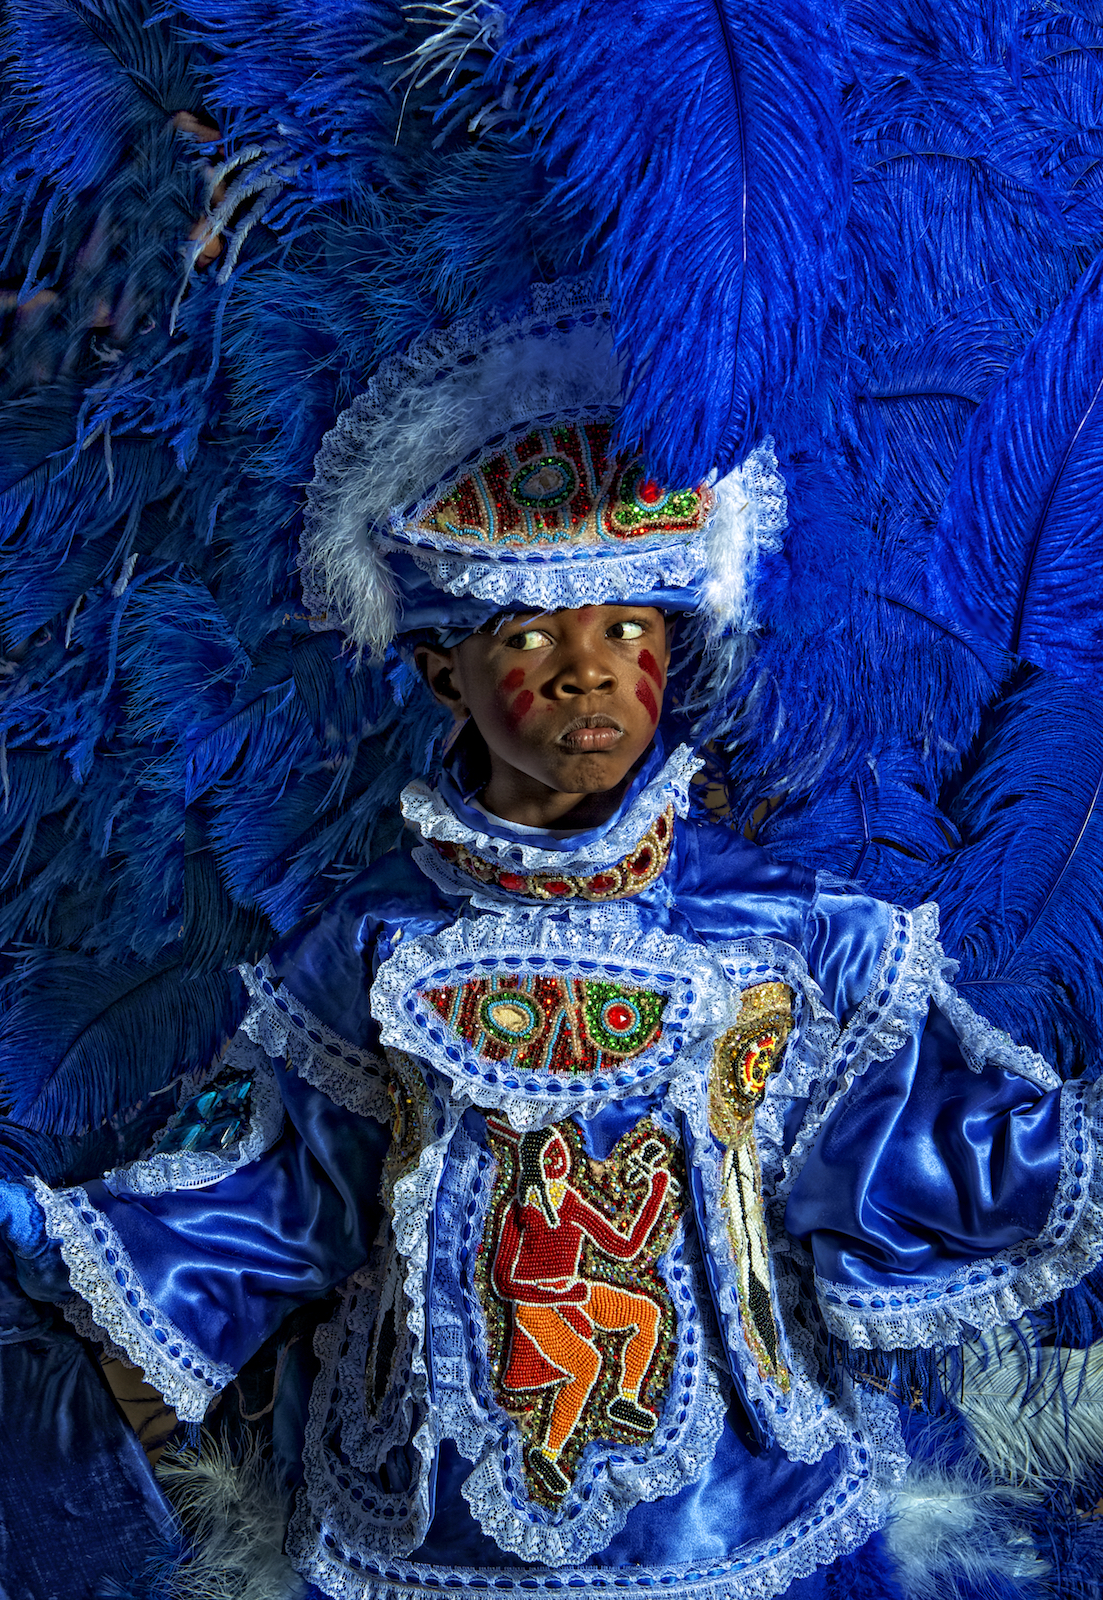 A Mardi Gras Indian in New Orleans.  Image by New Orleans based travel photographer, Marc Pagani - marcpagani.com